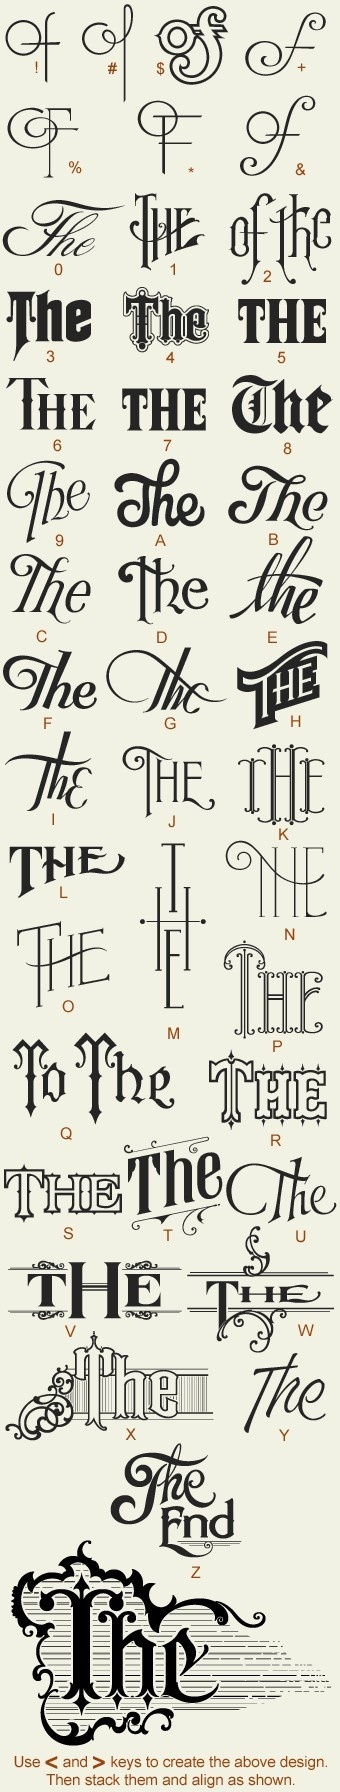 Great Fonts #type #lettering #vintage #the